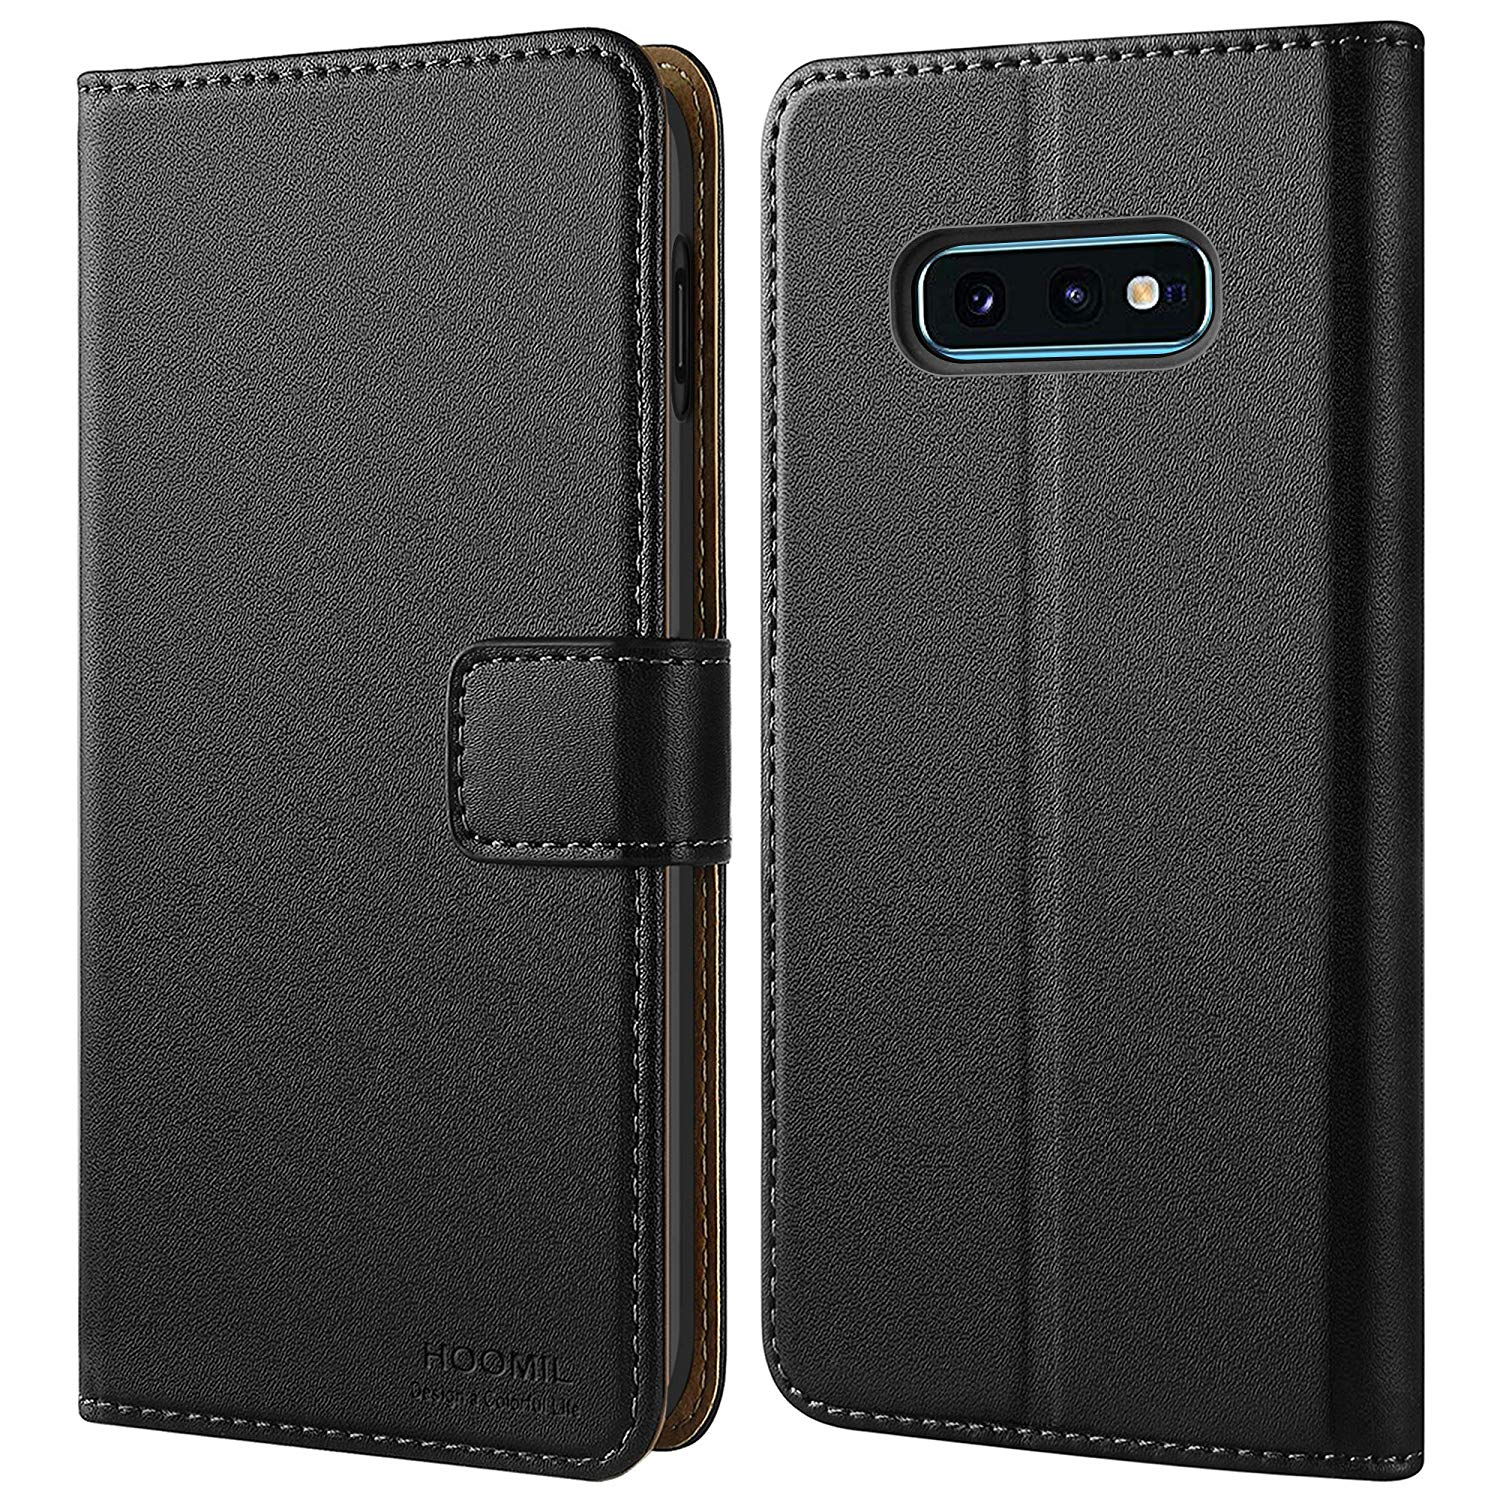 Leather flip case for Galaxy S10Eby HOOMIL